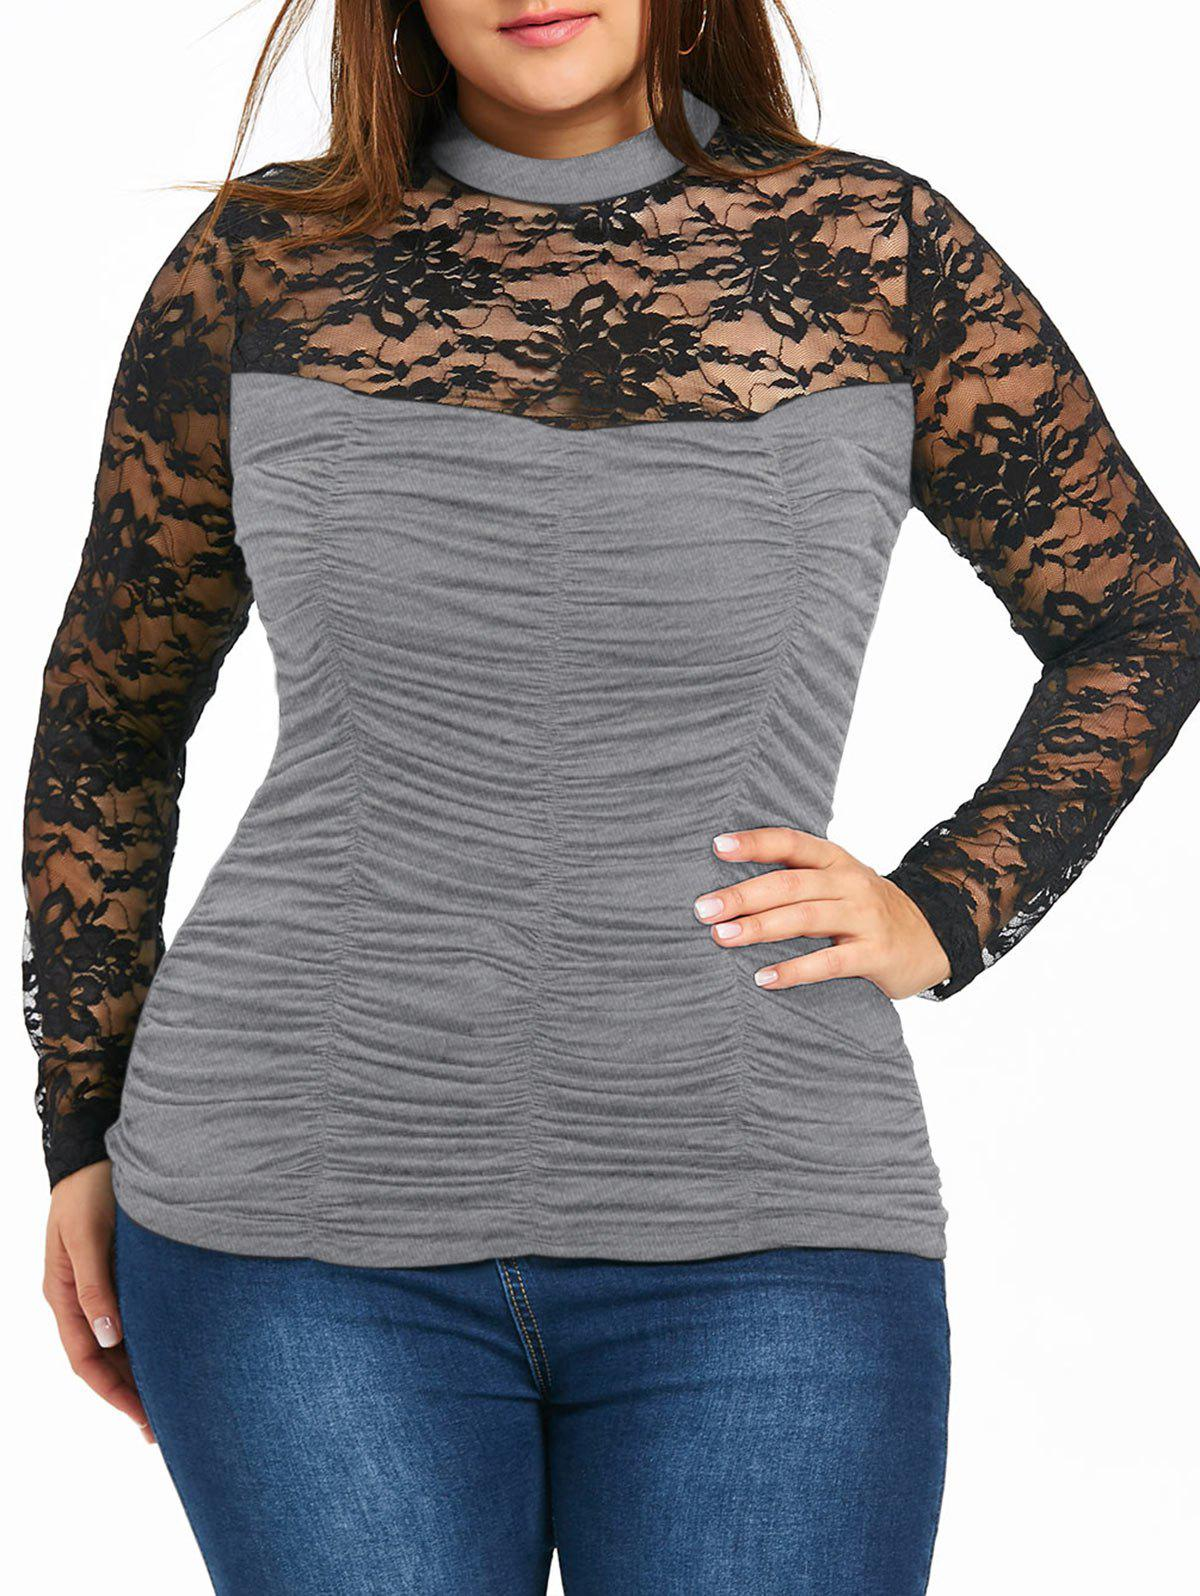 Plus Size Sheer Mock Neck Smocked Top - HEATHER GRAY XL